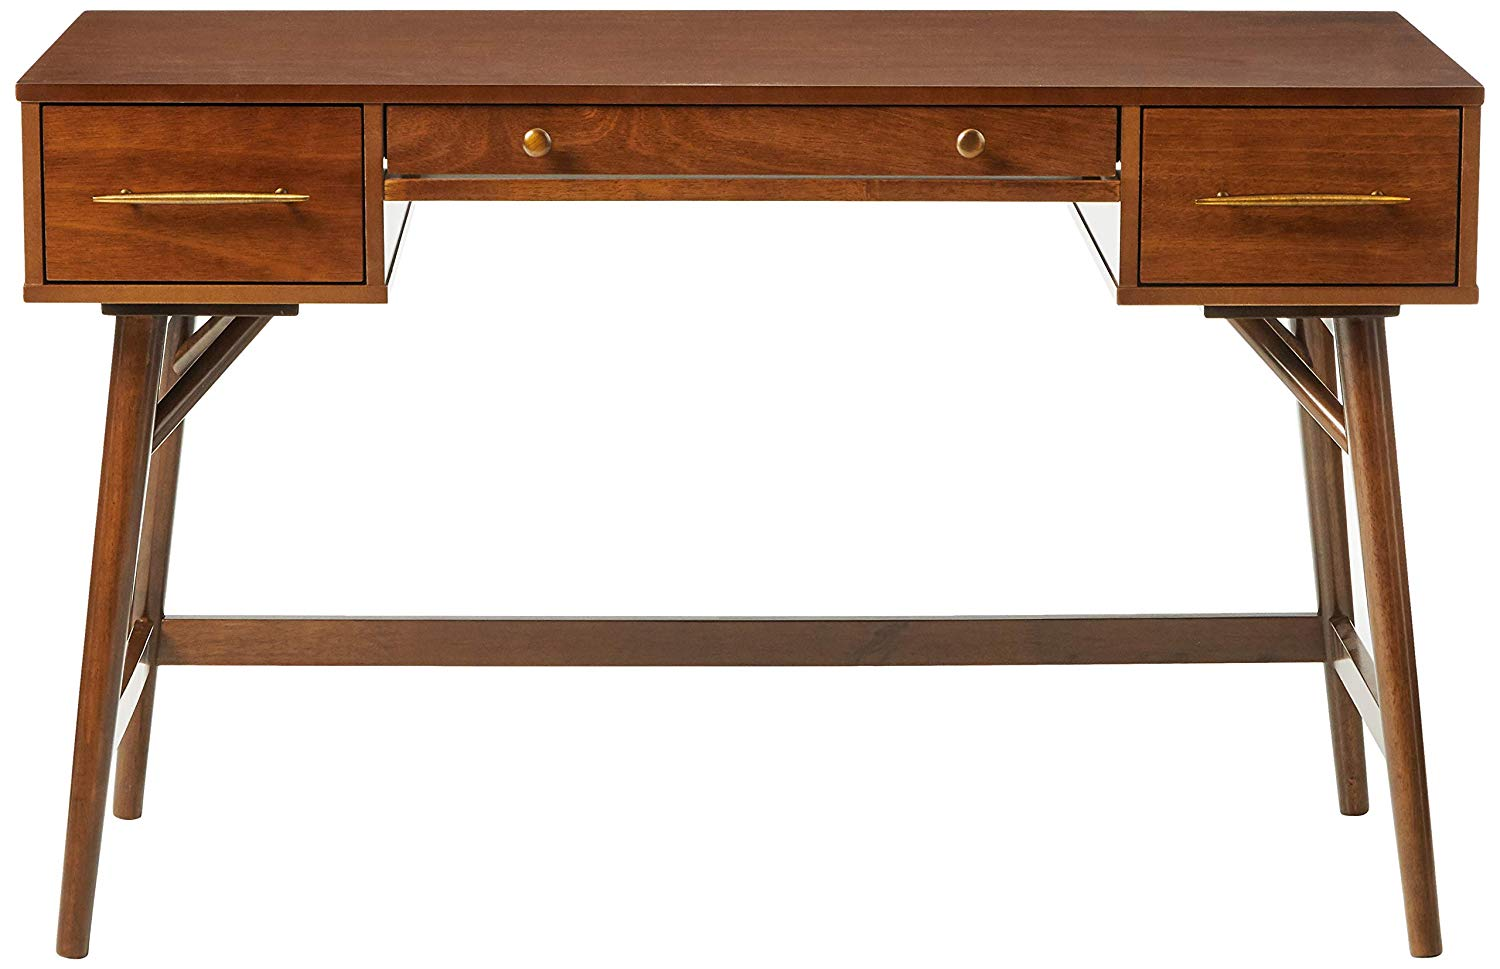 Essence Mid Century Modern Desk - Walnut Finish